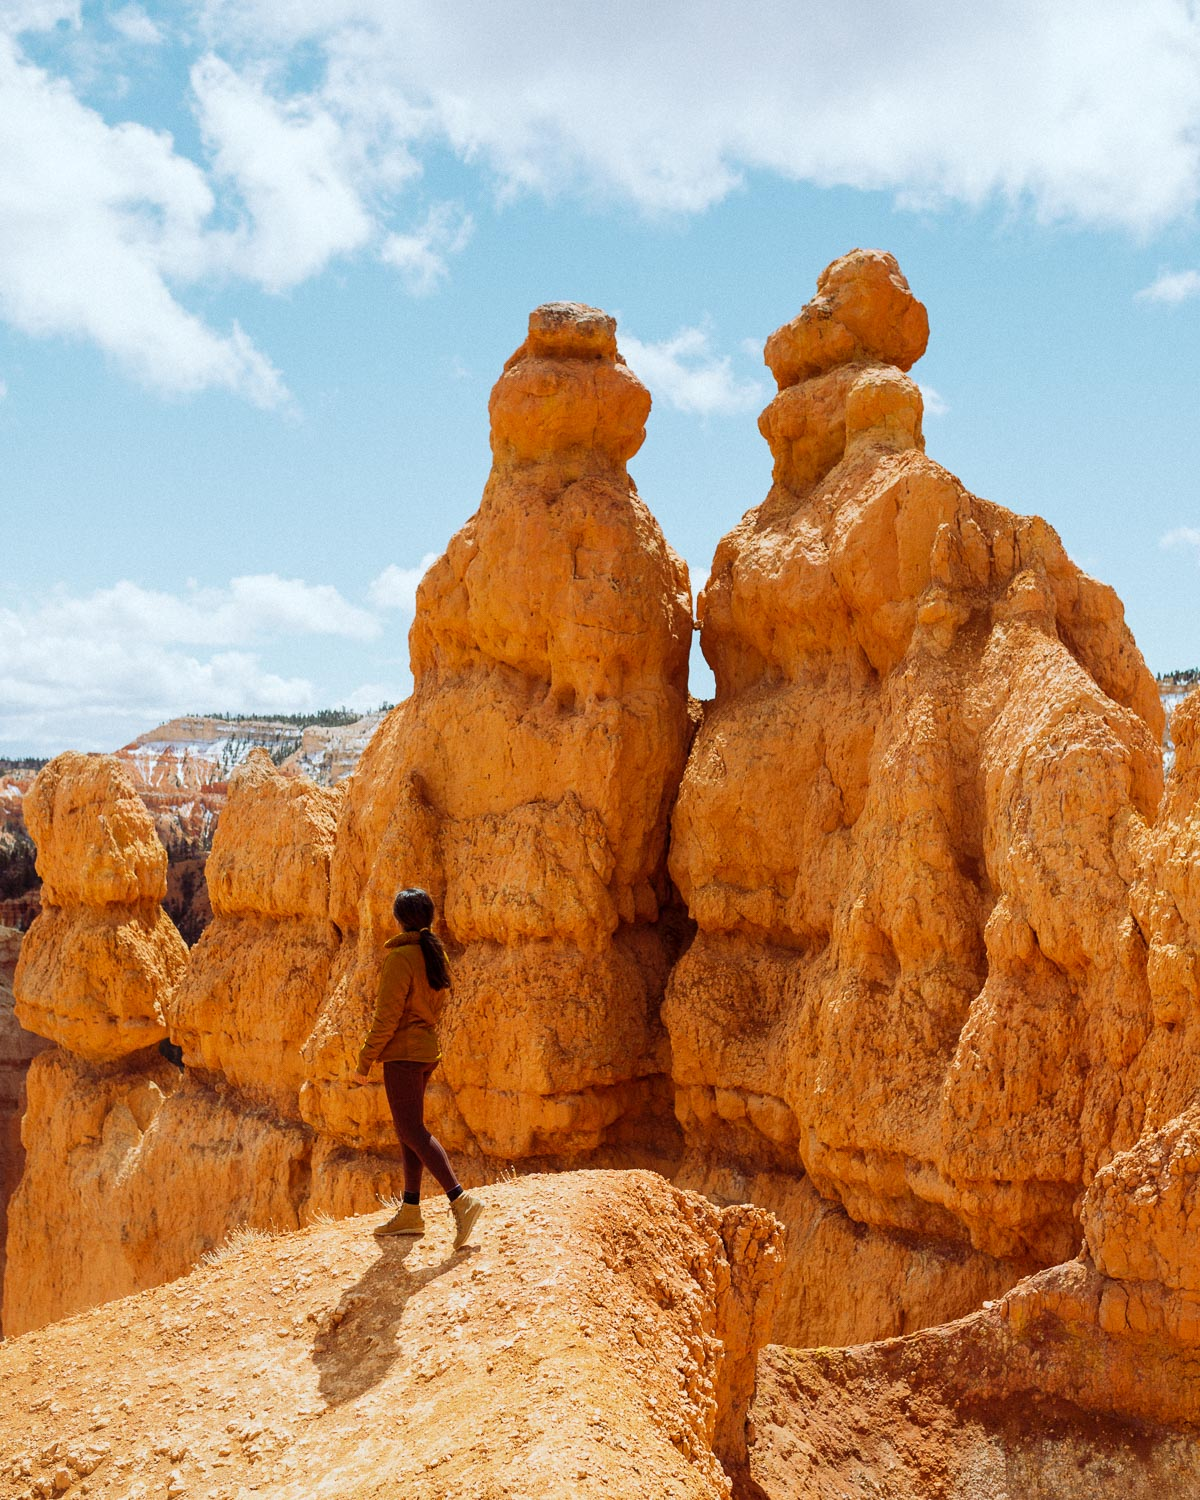 Rachel Off Duty: A Girl in a Yellow Jacket Stands Next to Hoodoos in Bryce Canyon